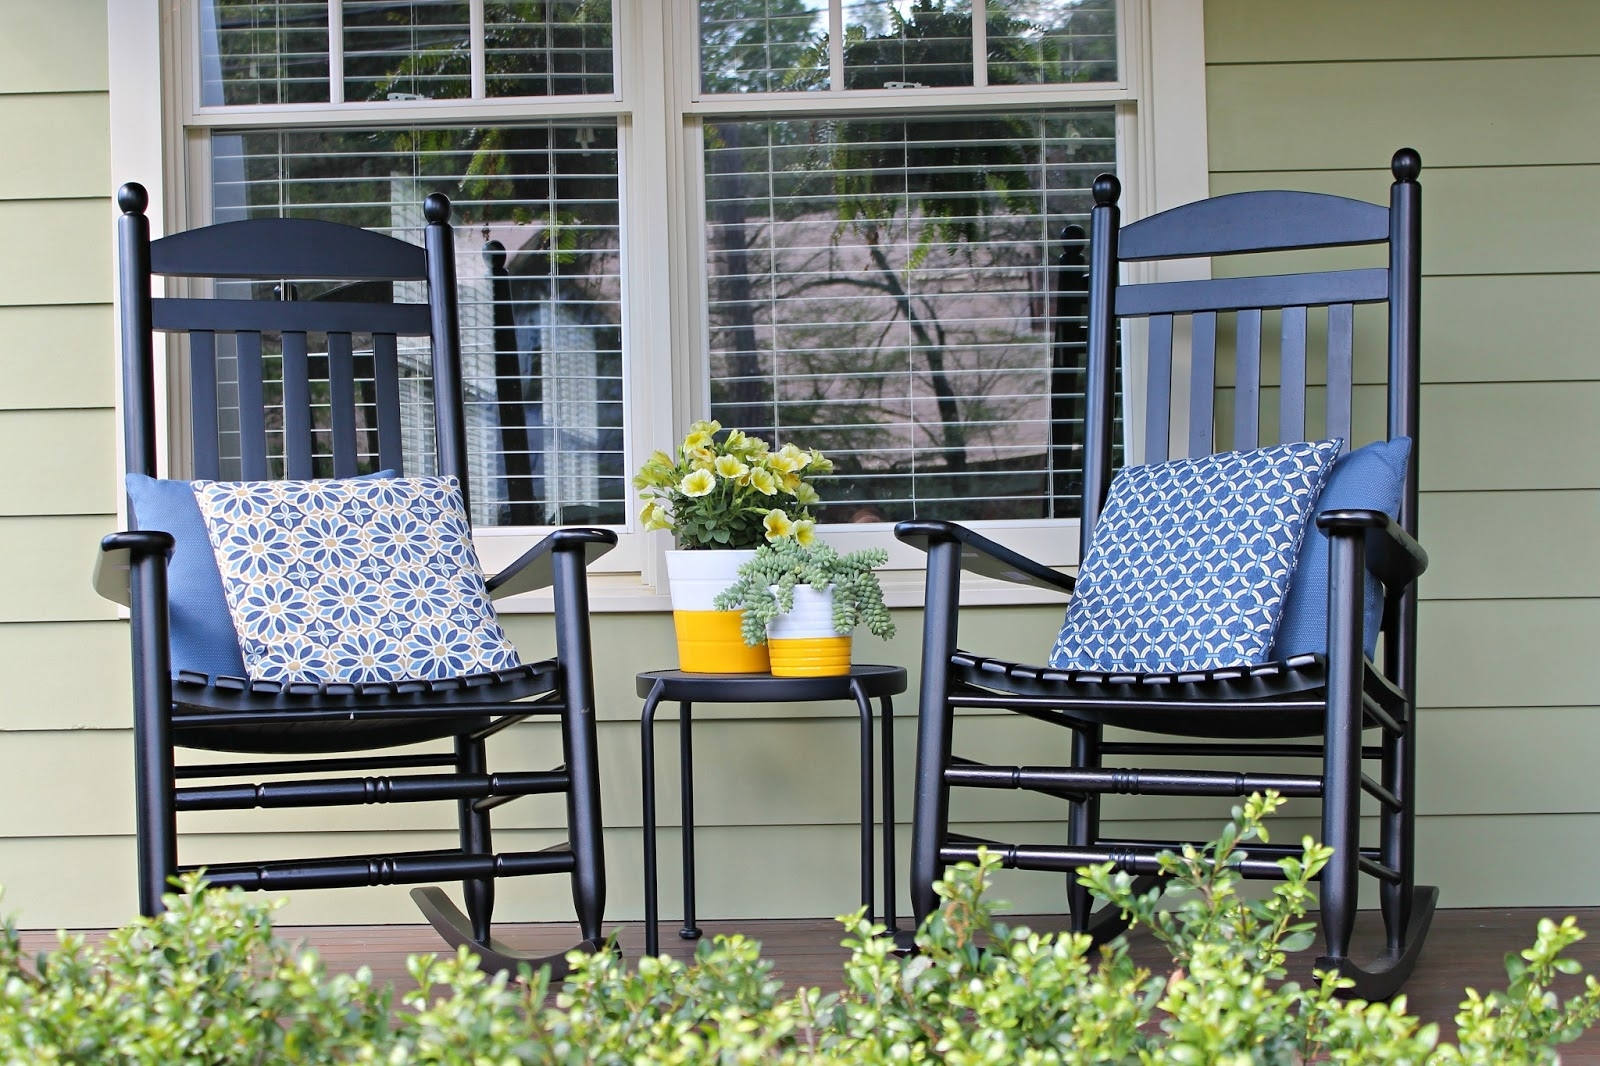 Popular The Iconic Style Of The Rocking Chair Pertaining To Rocking Chairs For Front Porch (View 10 of 20)